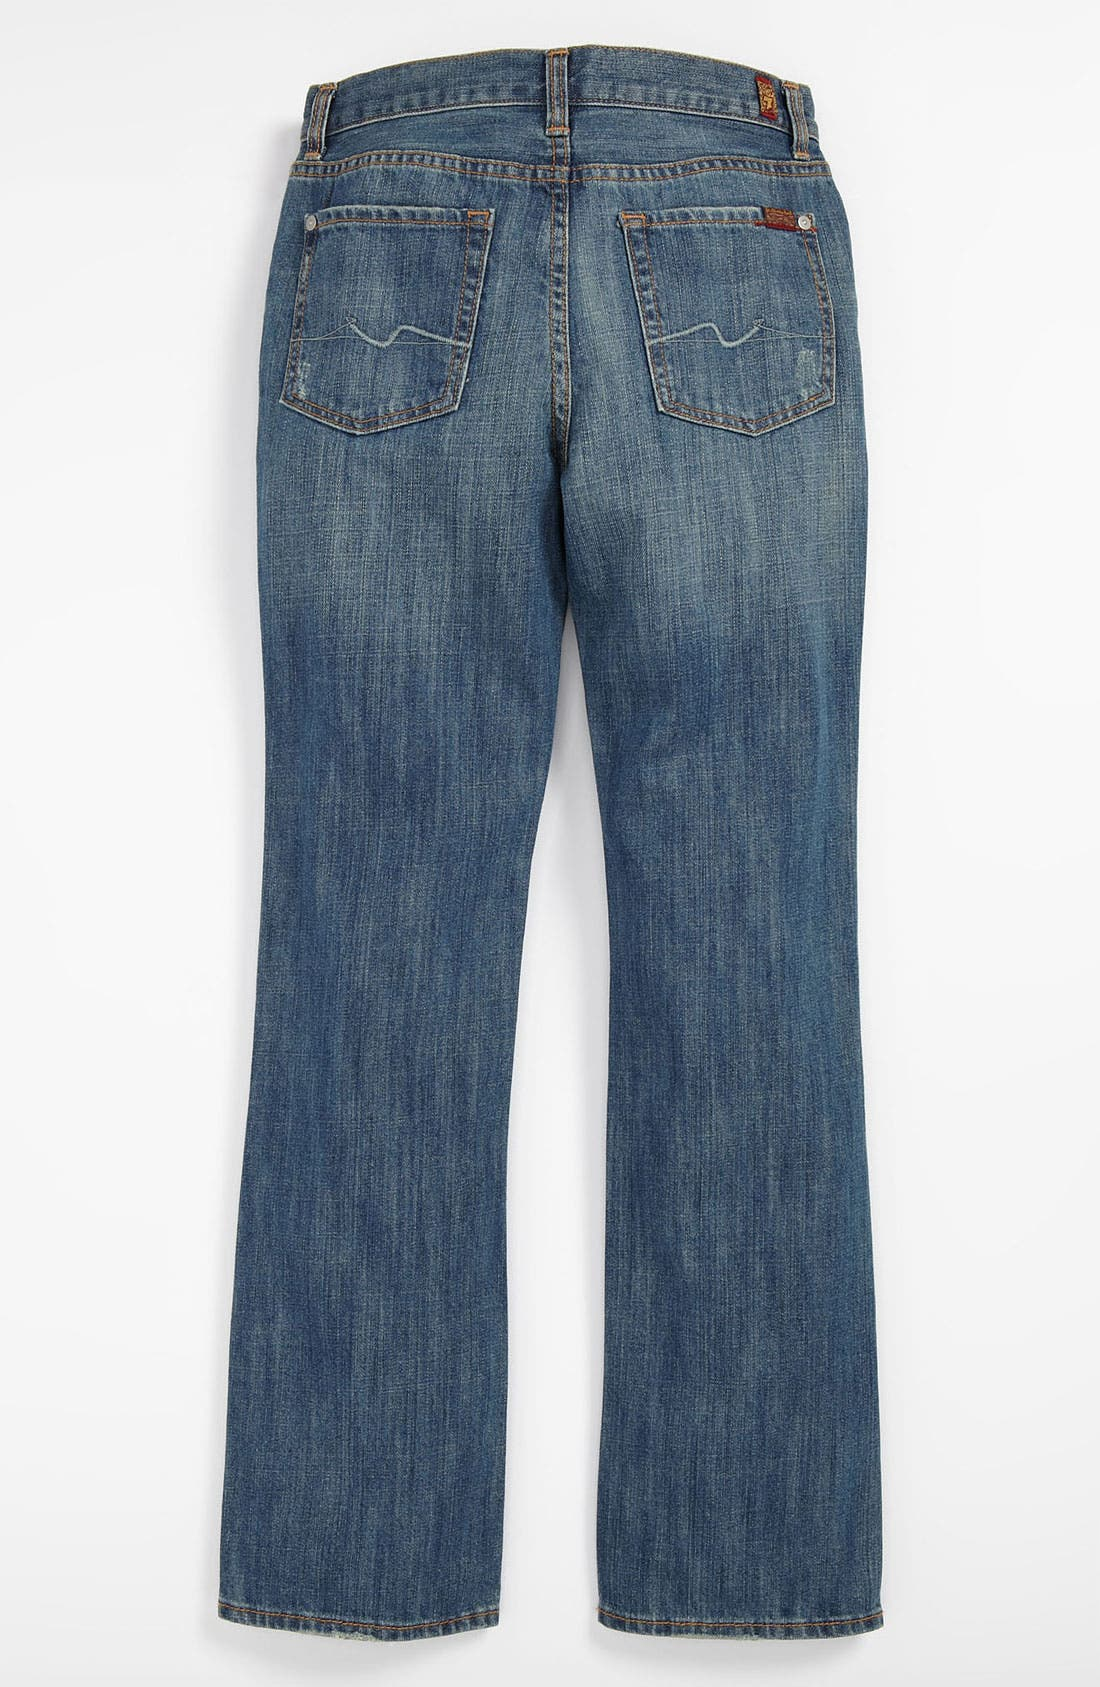 Alternate Image 1 Selected - 7 For All Mankind® 'Nate' Slim Bootcut Jeans (Big Boys)